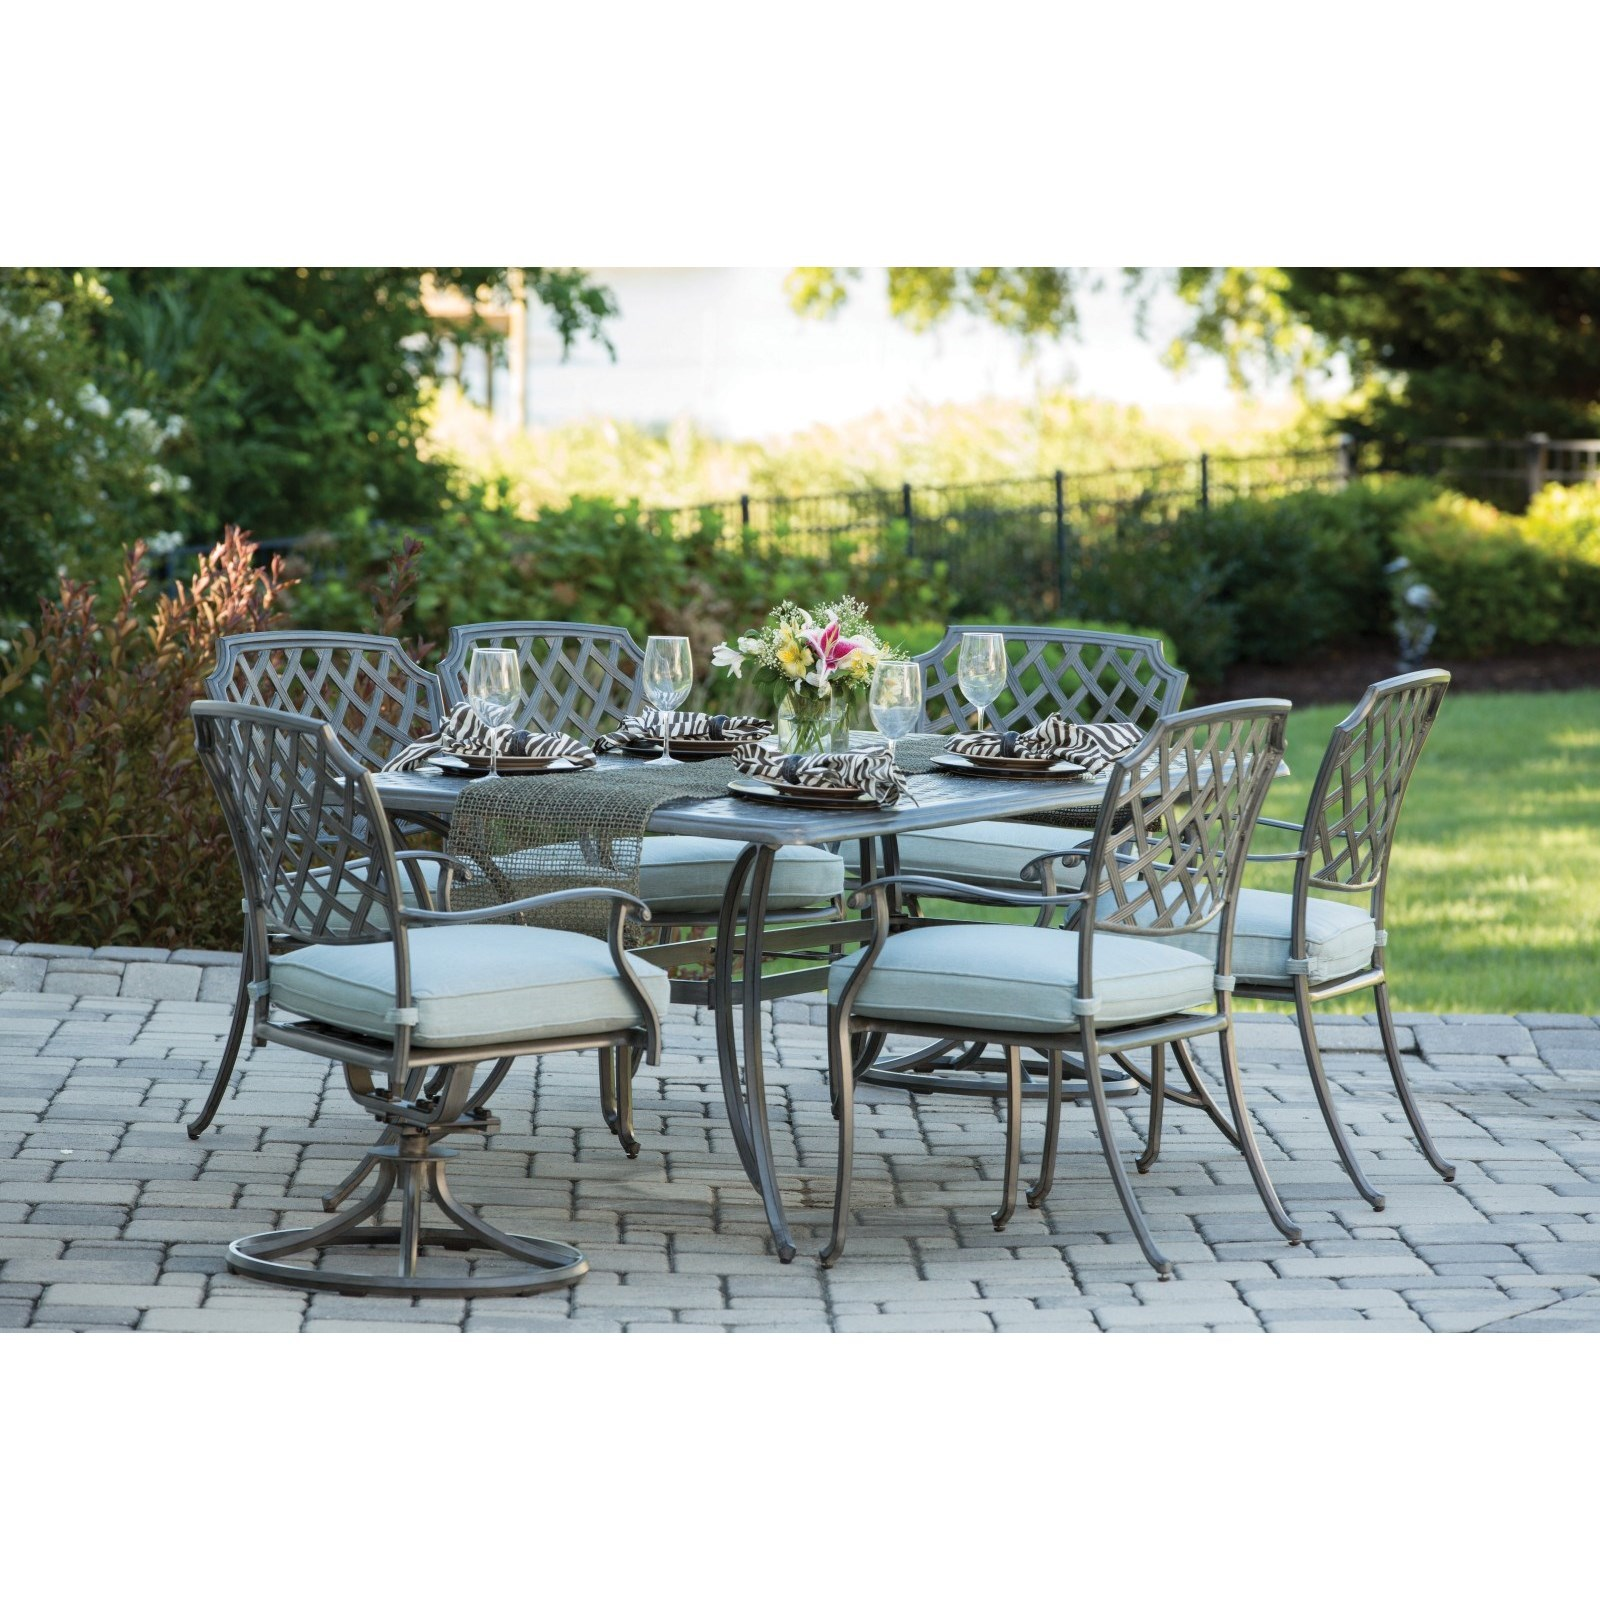 Alfresco Melbourne Outdoor Dining Set with 6 SeatsBelfort